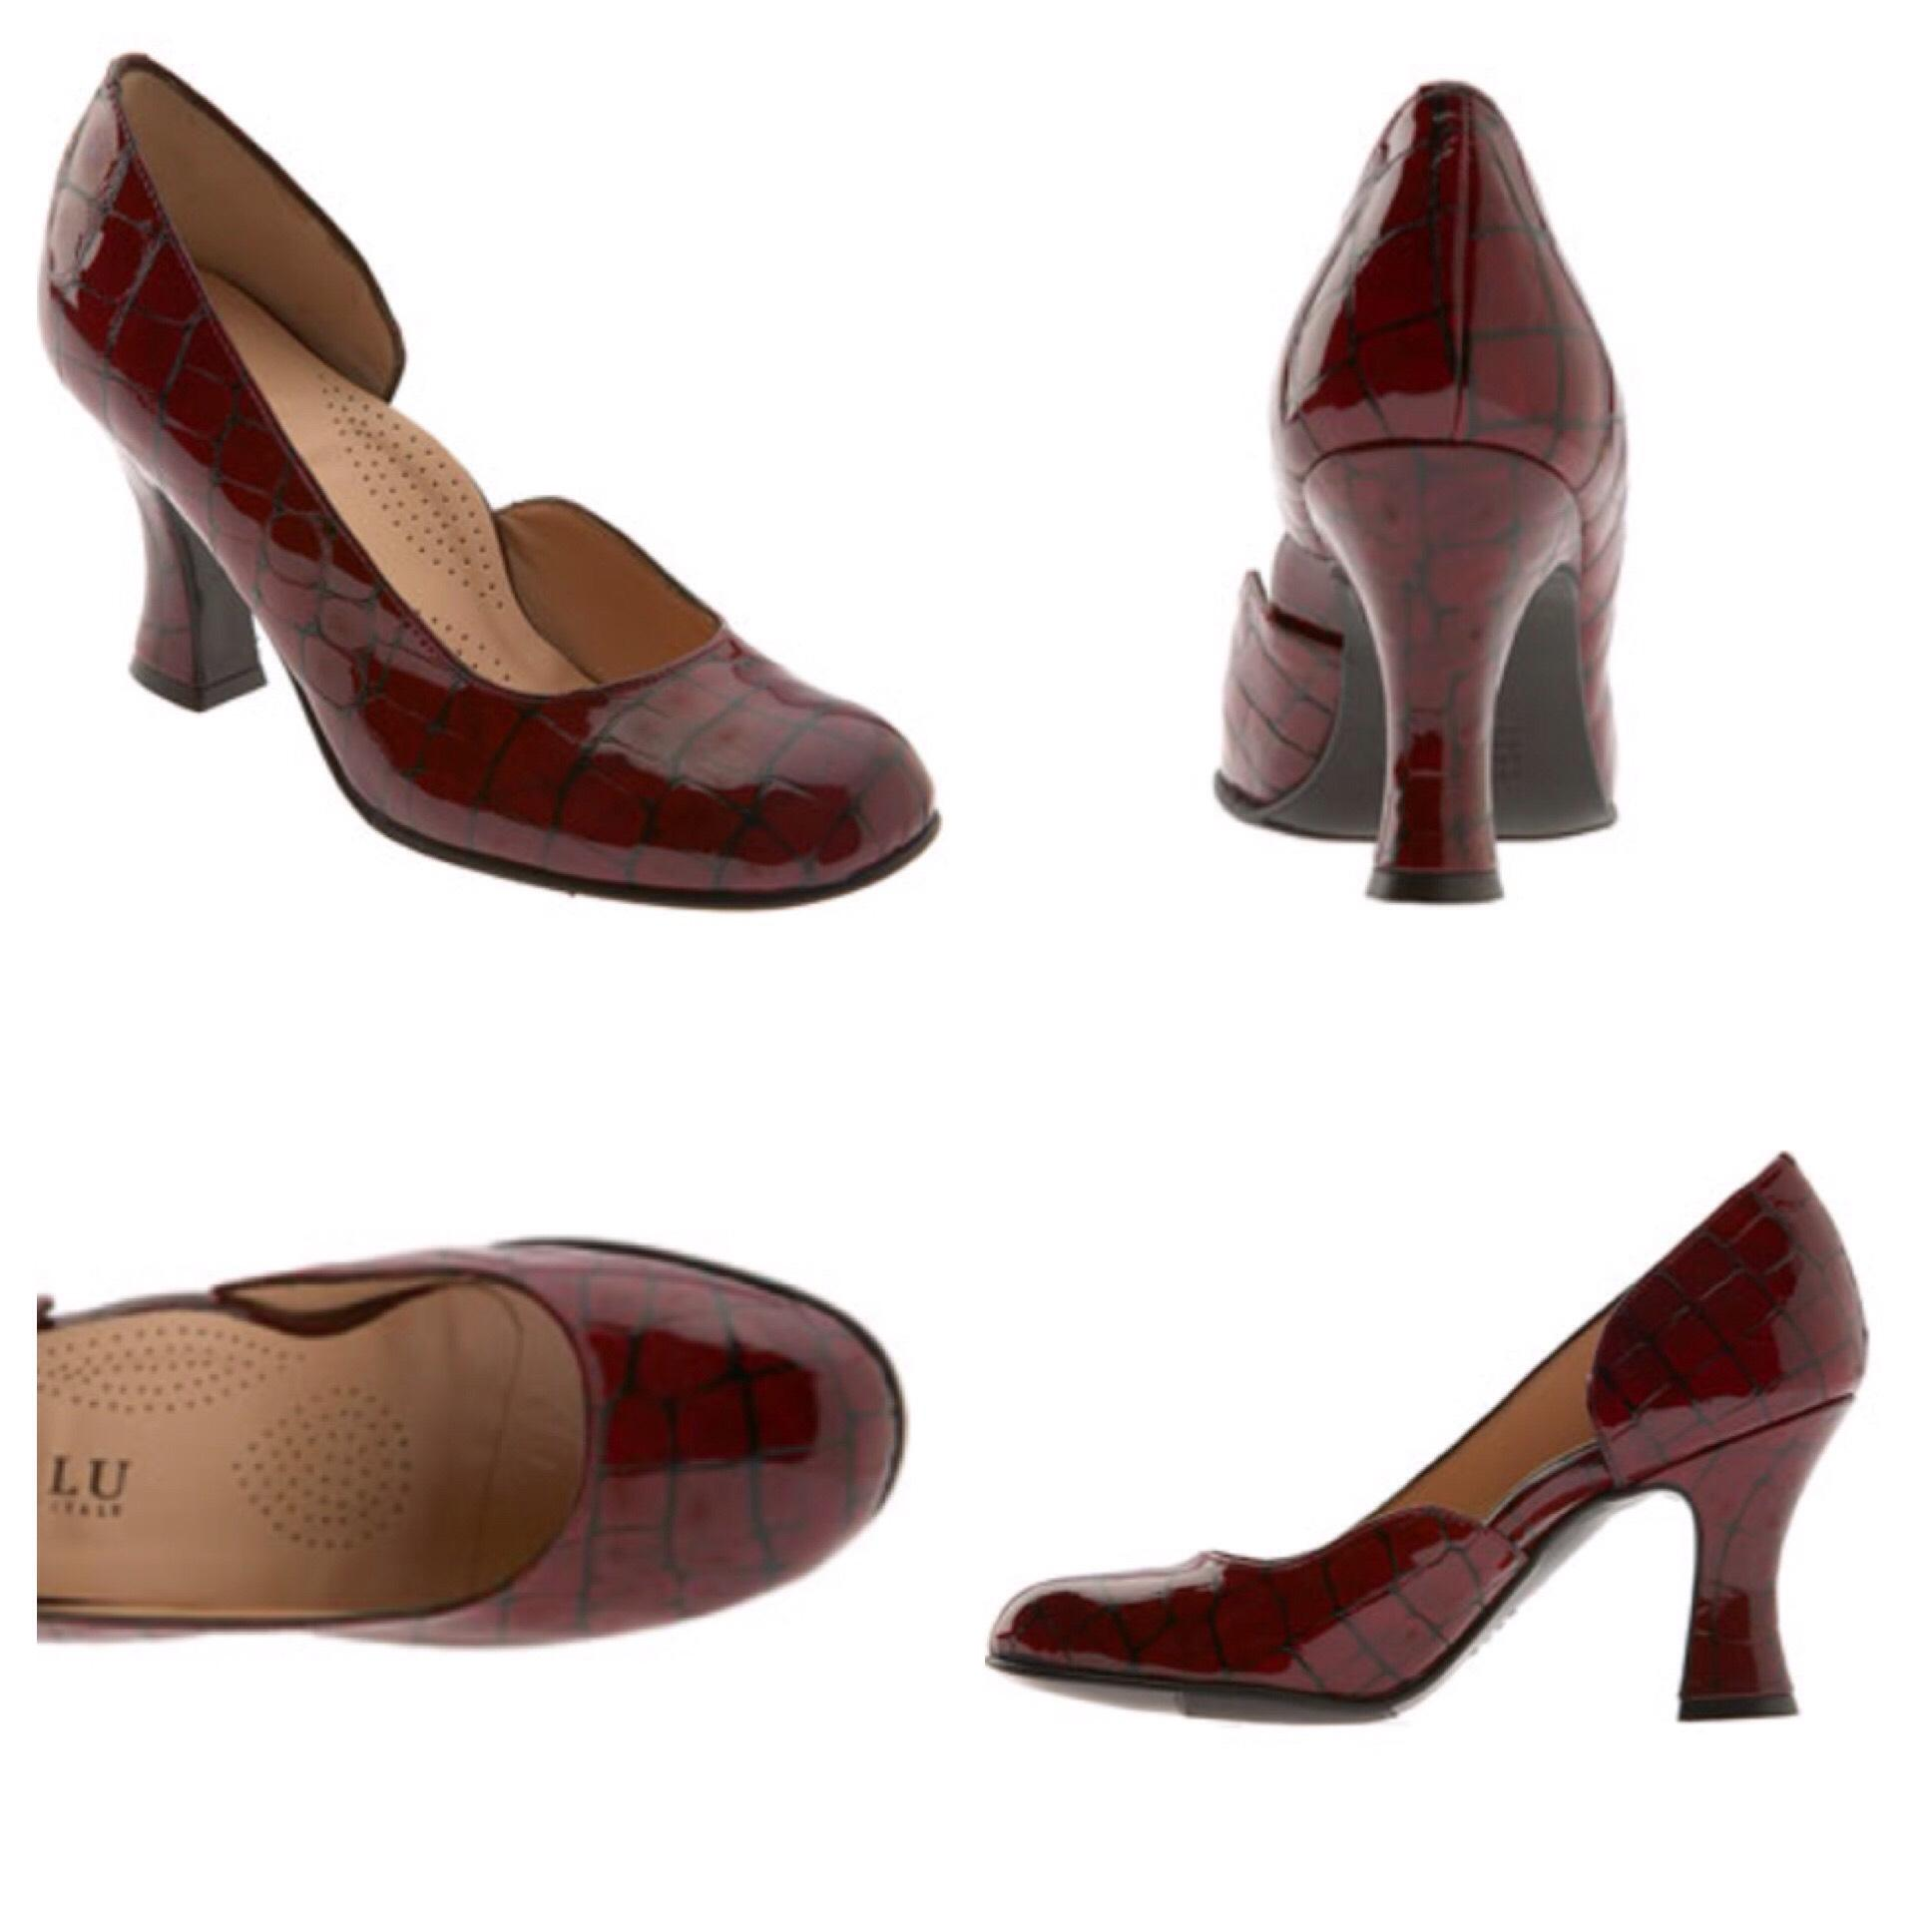 find great for sale prices Anyi Lu Patent Leather Round-Toe Pumps Lg5Y1l